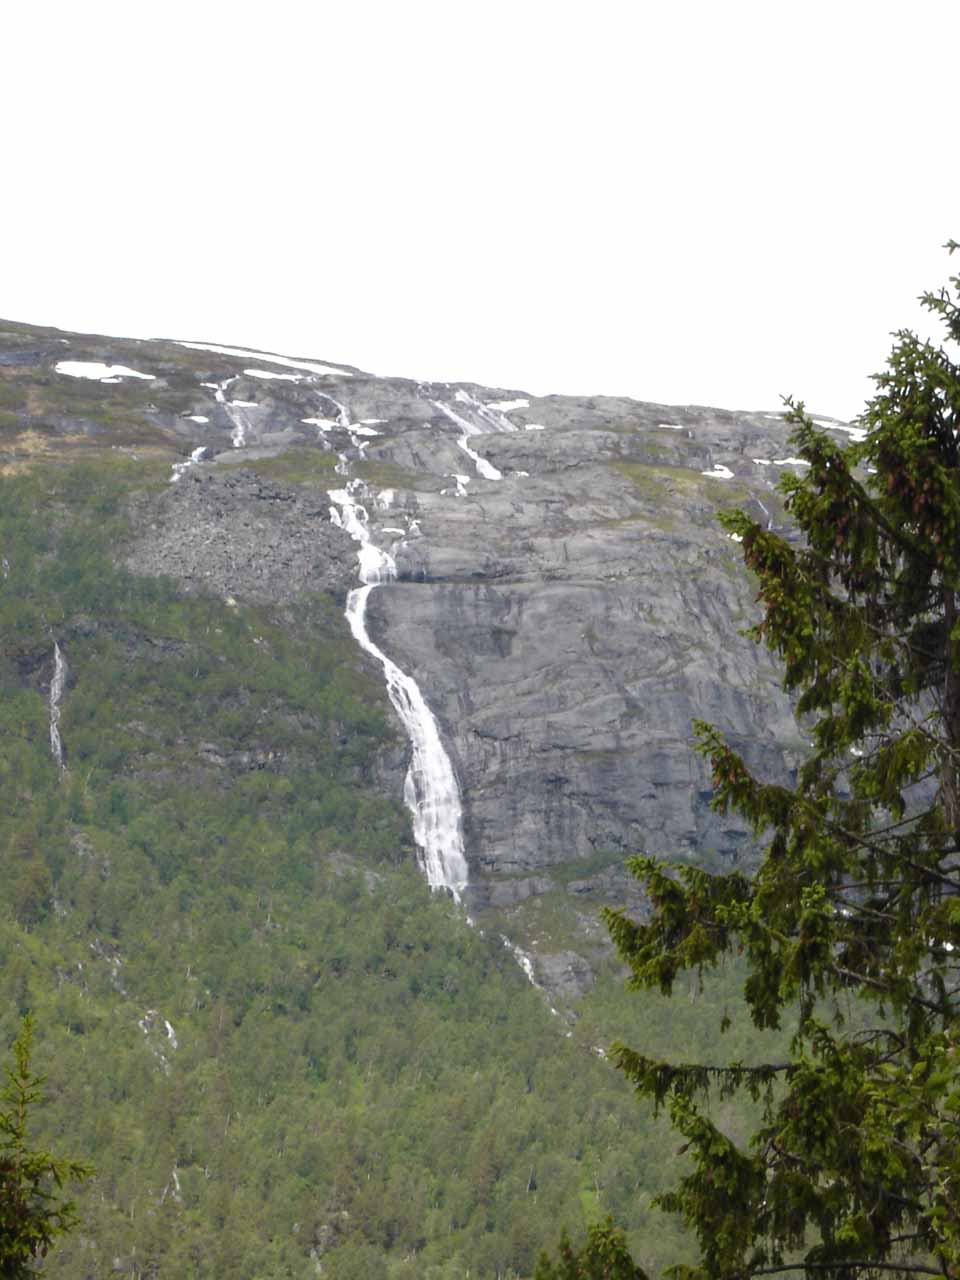 This impressively tall waterfall, which we believe to be called Svaåafossen, was the very reason why we managed to find Kleivafossen